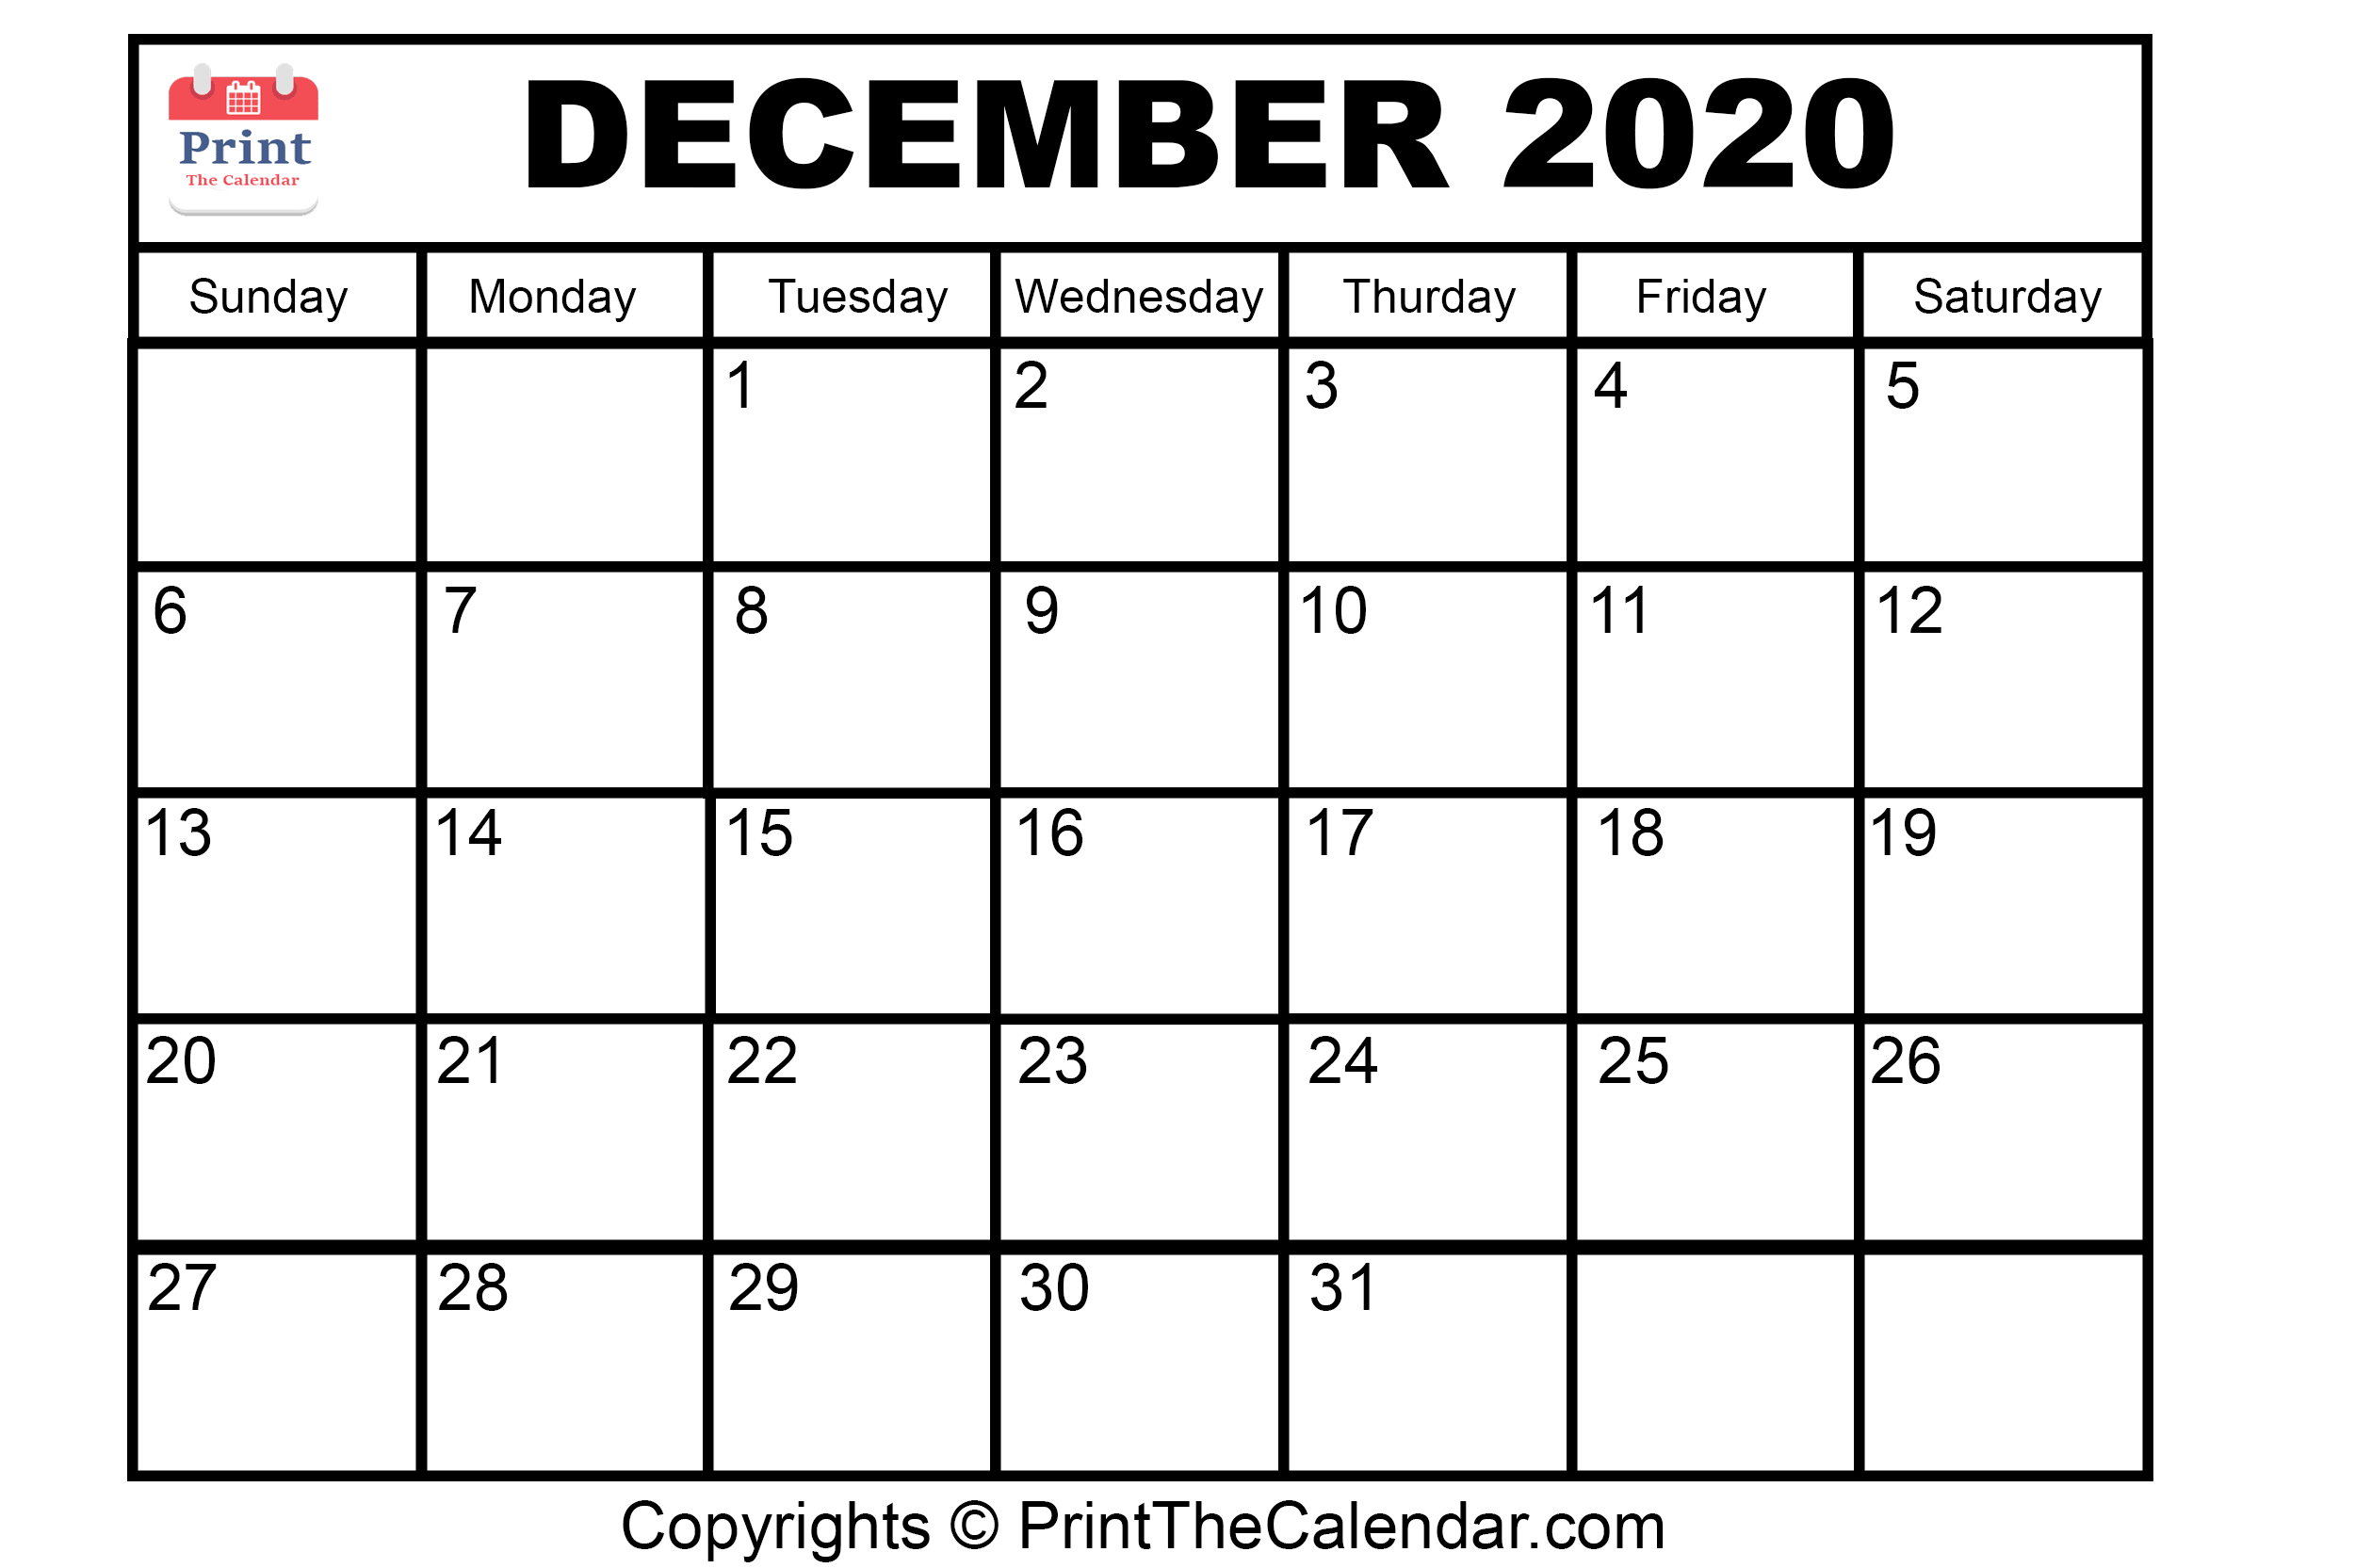 Take October To December 2020 Calendar | Calendar Depo Provera Calendar Printable Pdf Based On 3 Months